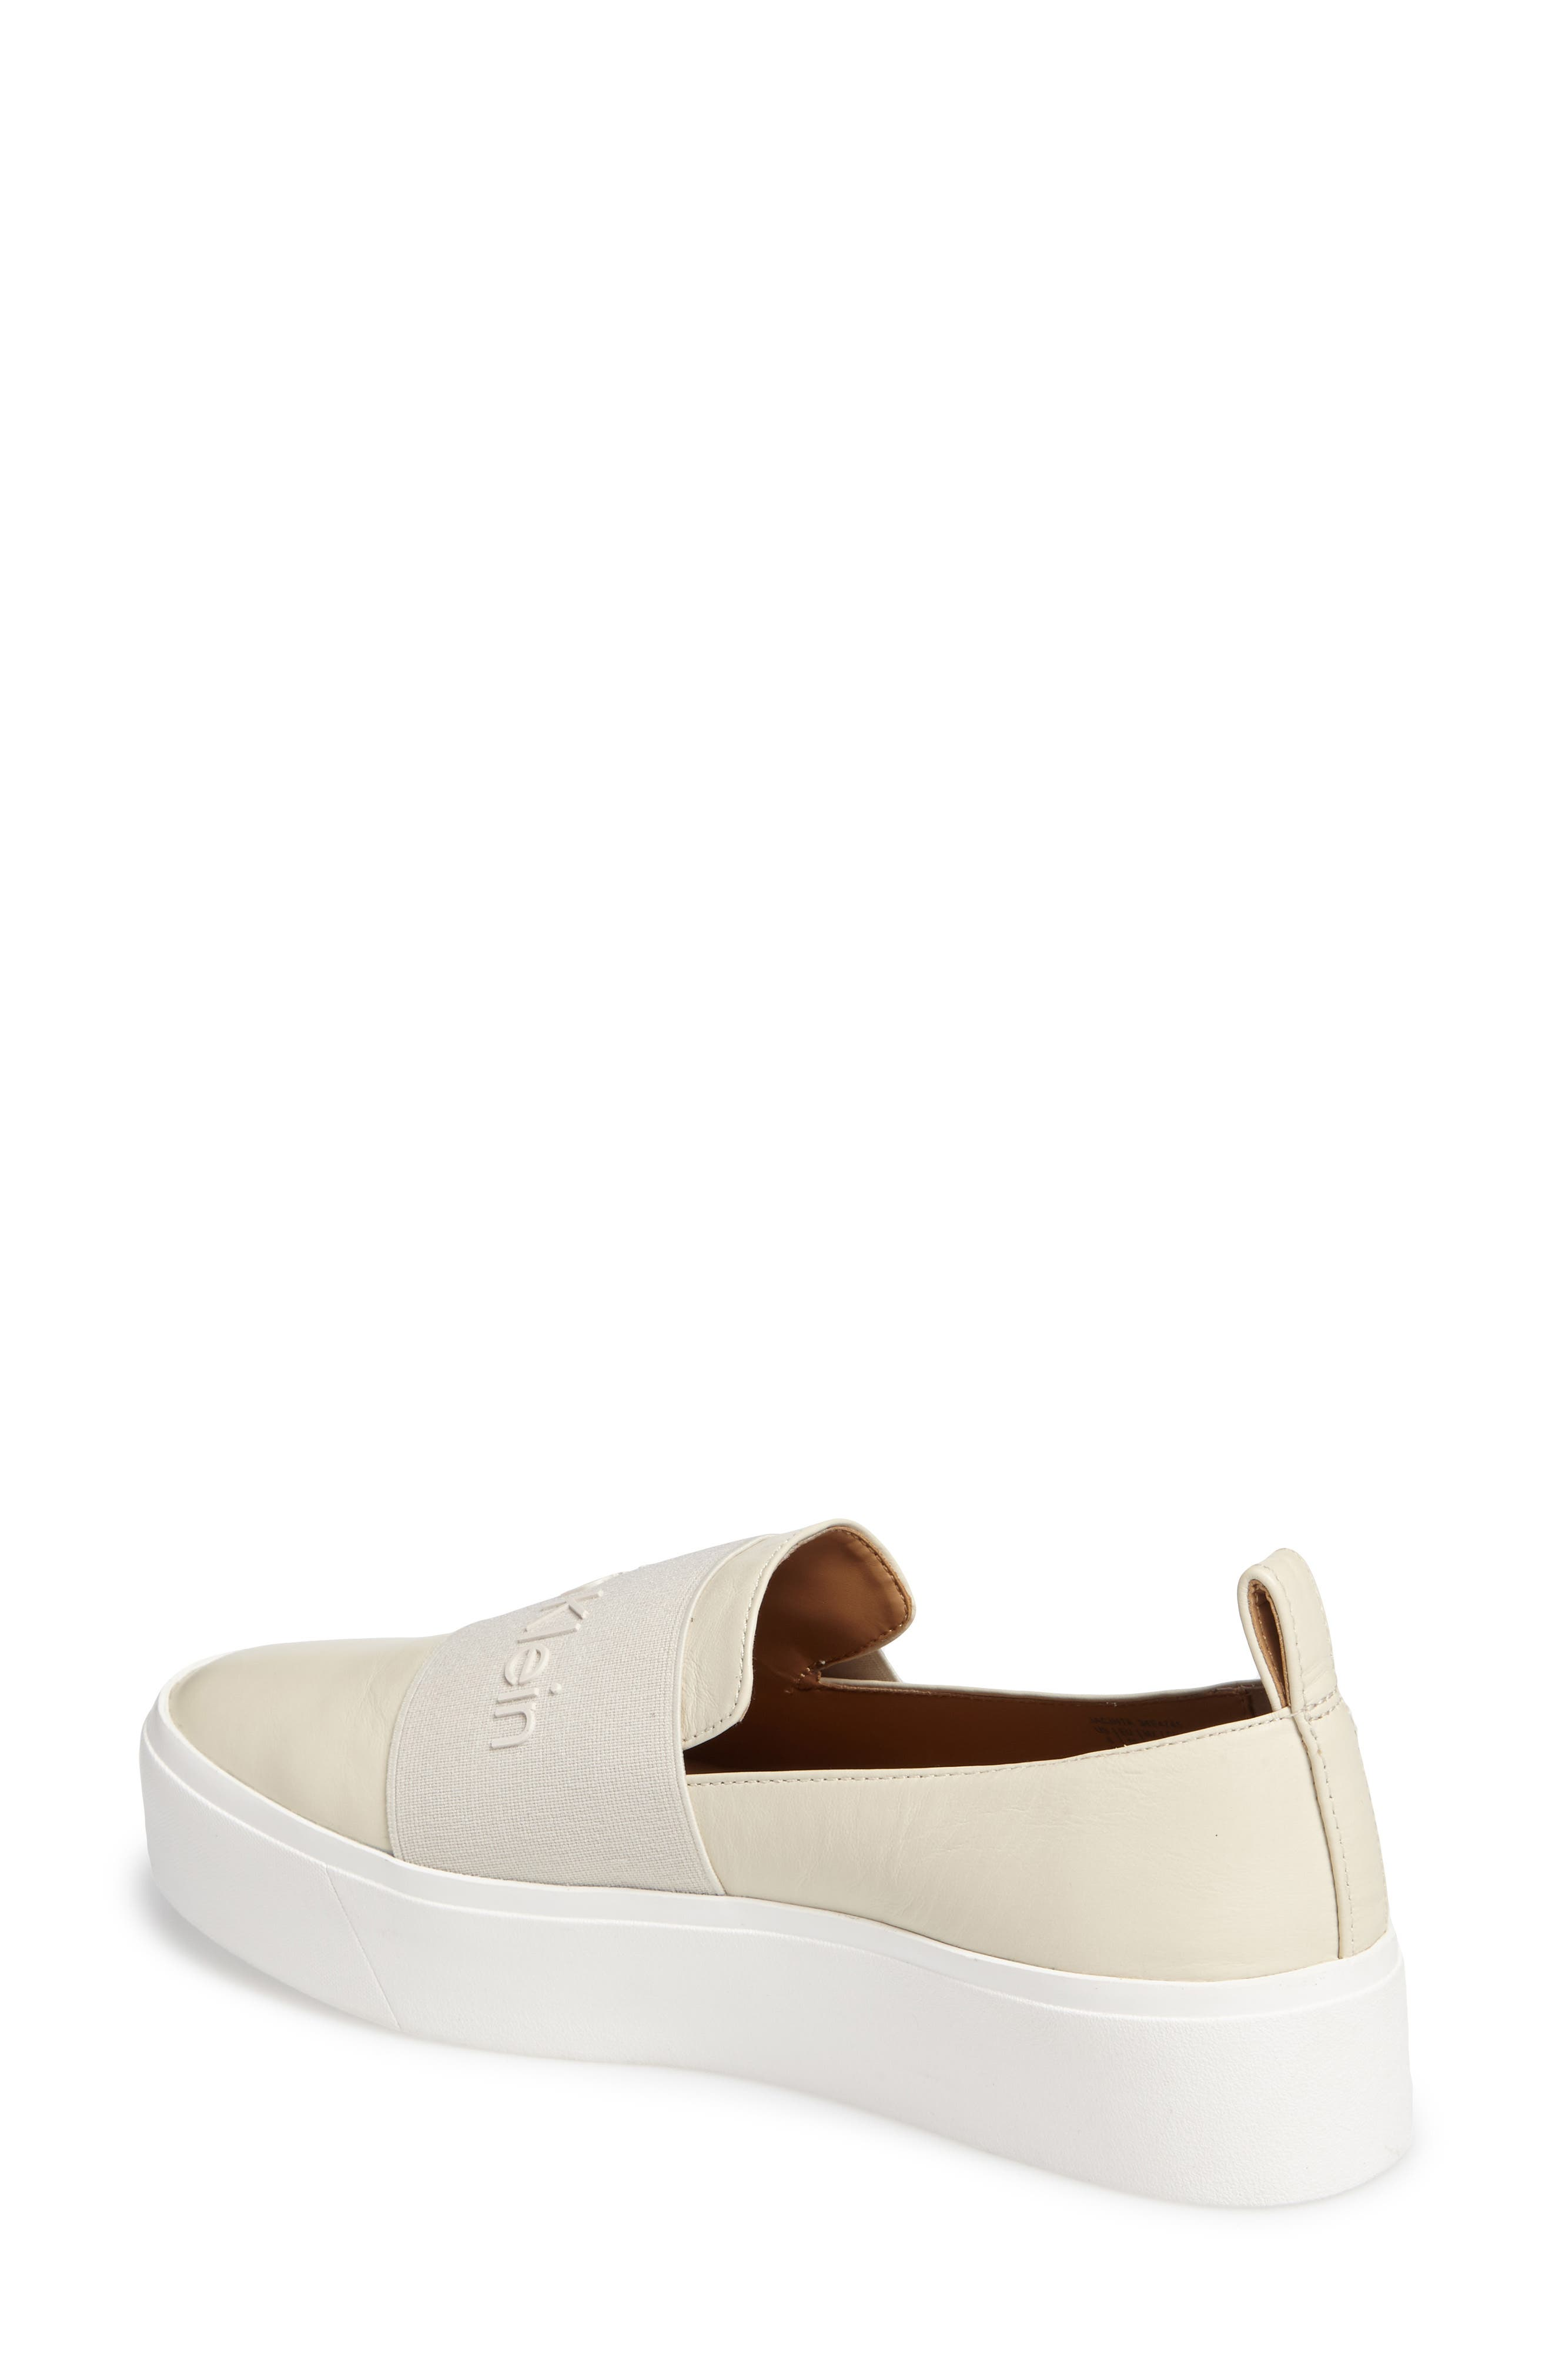 Jacinta Platform Sneaker,                             Alternate thumbnail 2, color,                             Soft White Leather